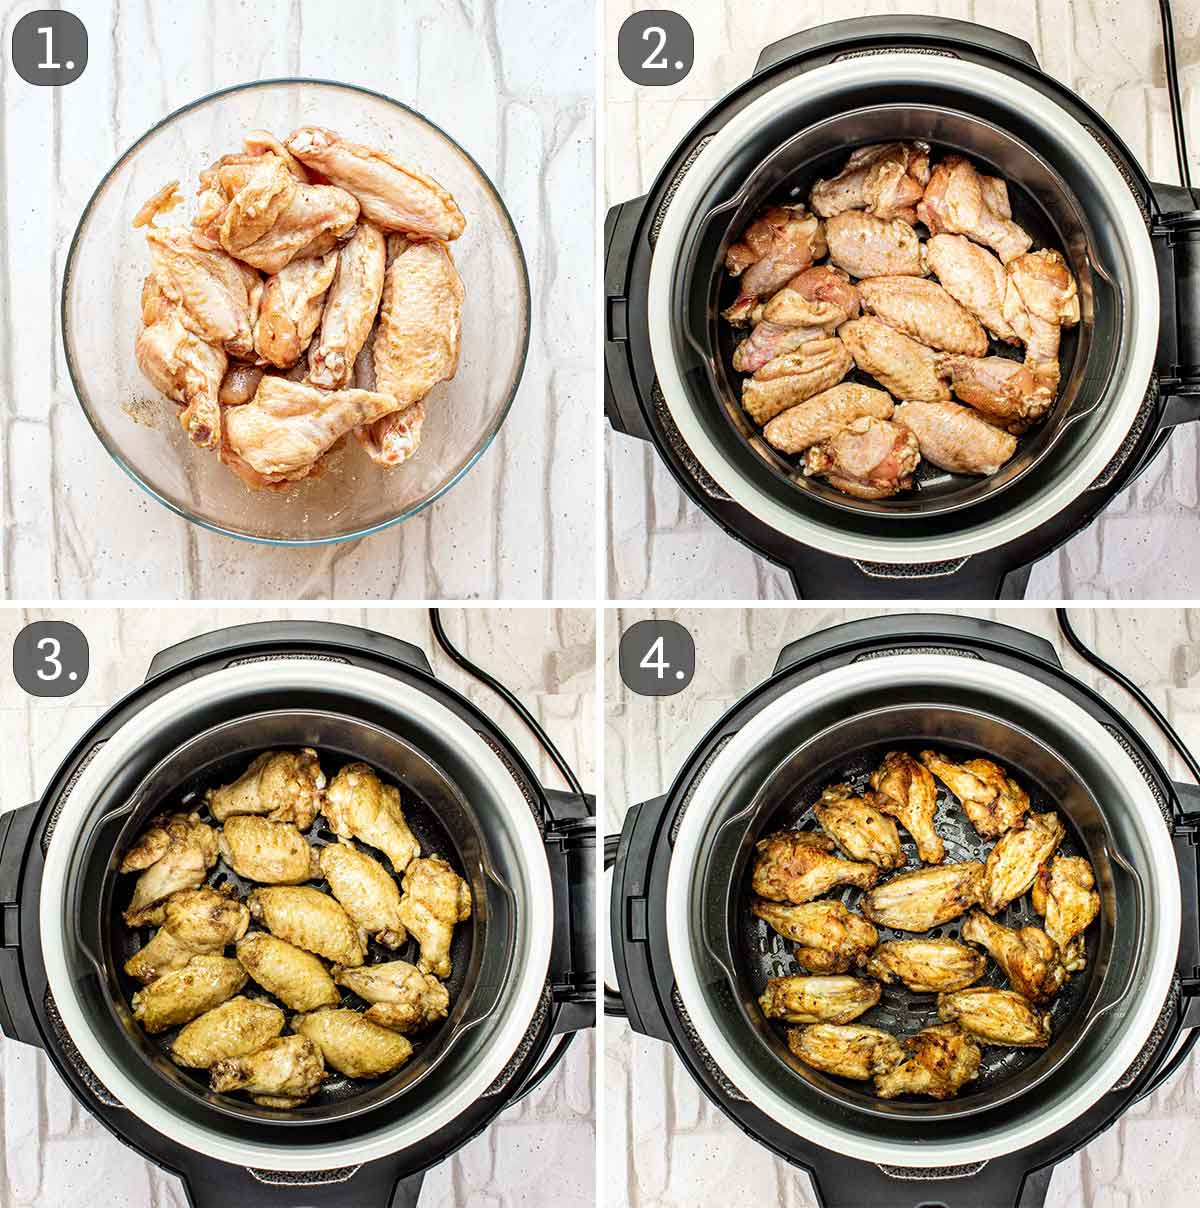 detailed process shots showing how to make chicken wings in the air fryer.